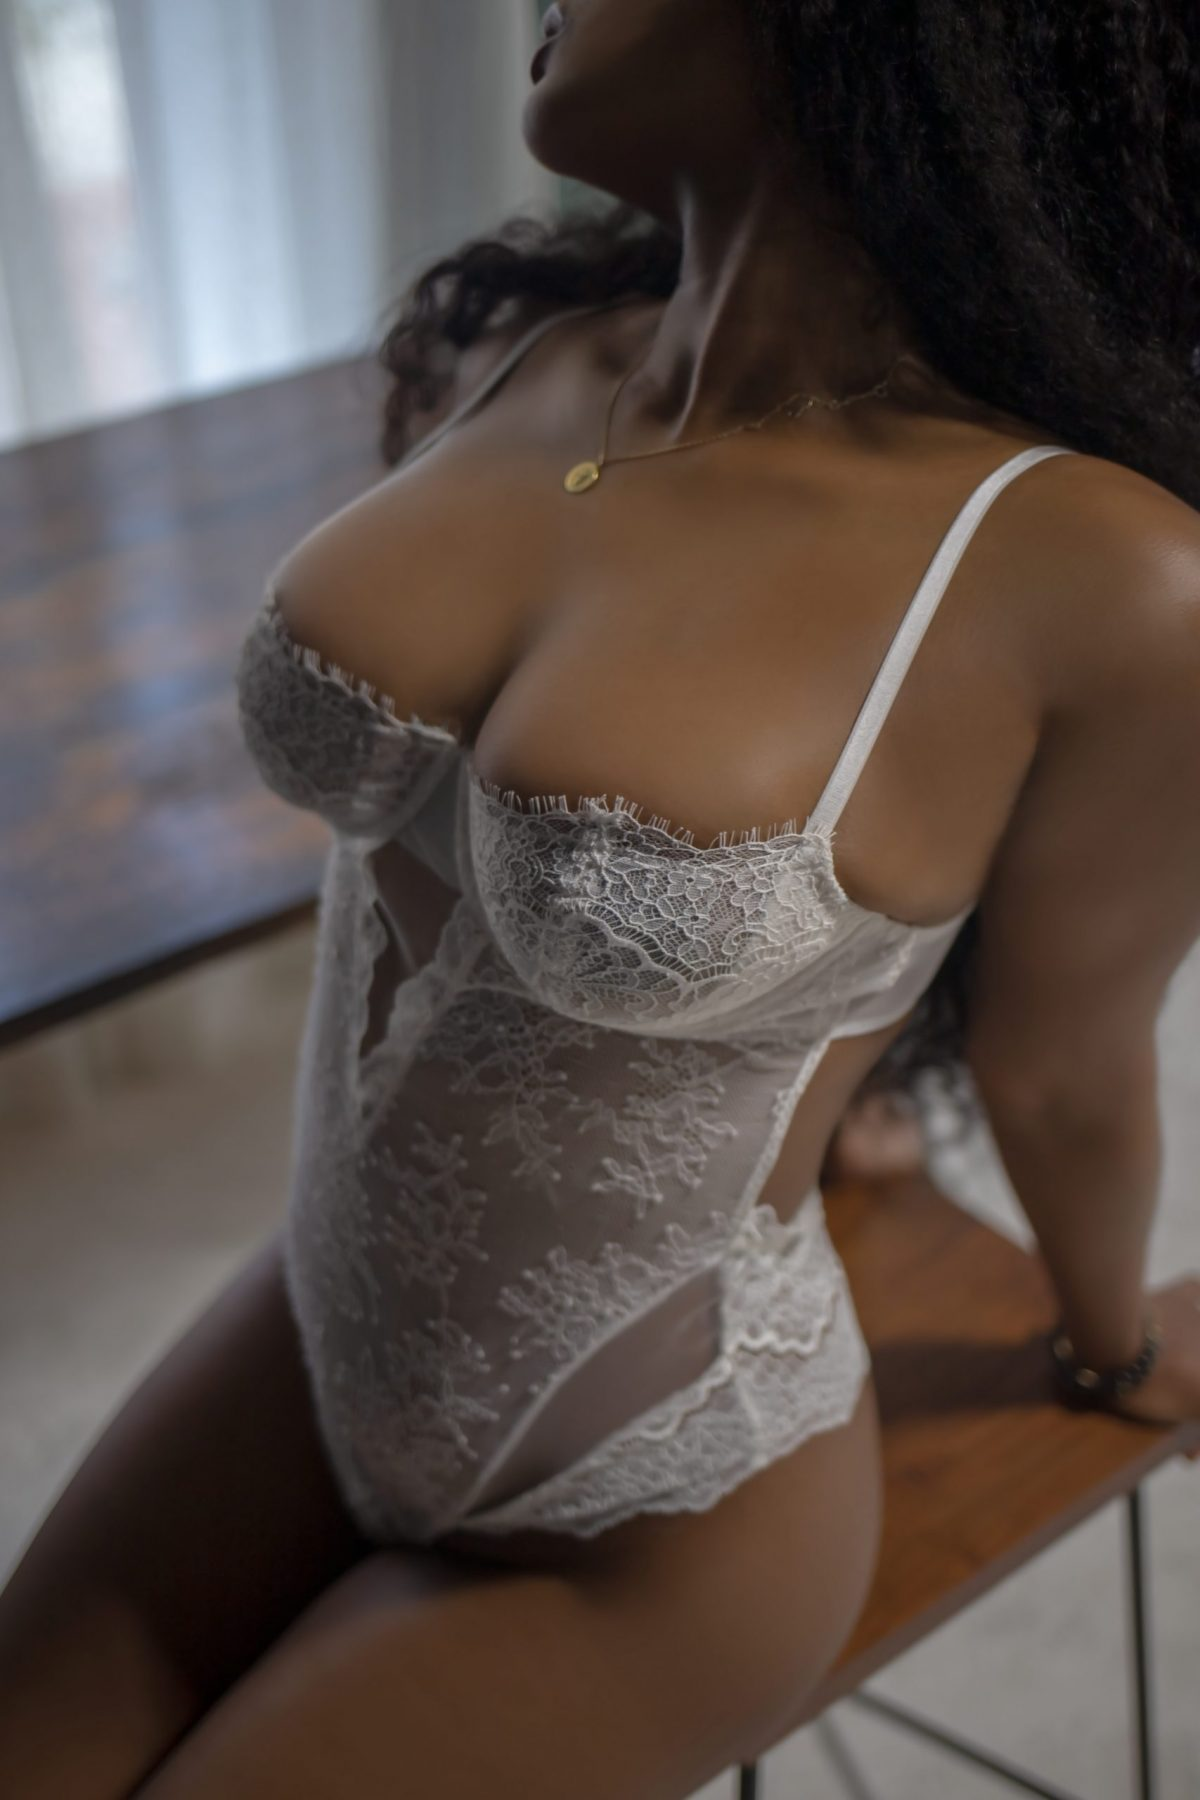 Toronto escorts companion upscale Nina Interests Duo Couple-friendly Disability-friendly Non-smoking Age Mature Figure Slender Petite Breasts Natural Hair Brunette Ethnicity Latina Black Tattoos Small Arrival New Photos